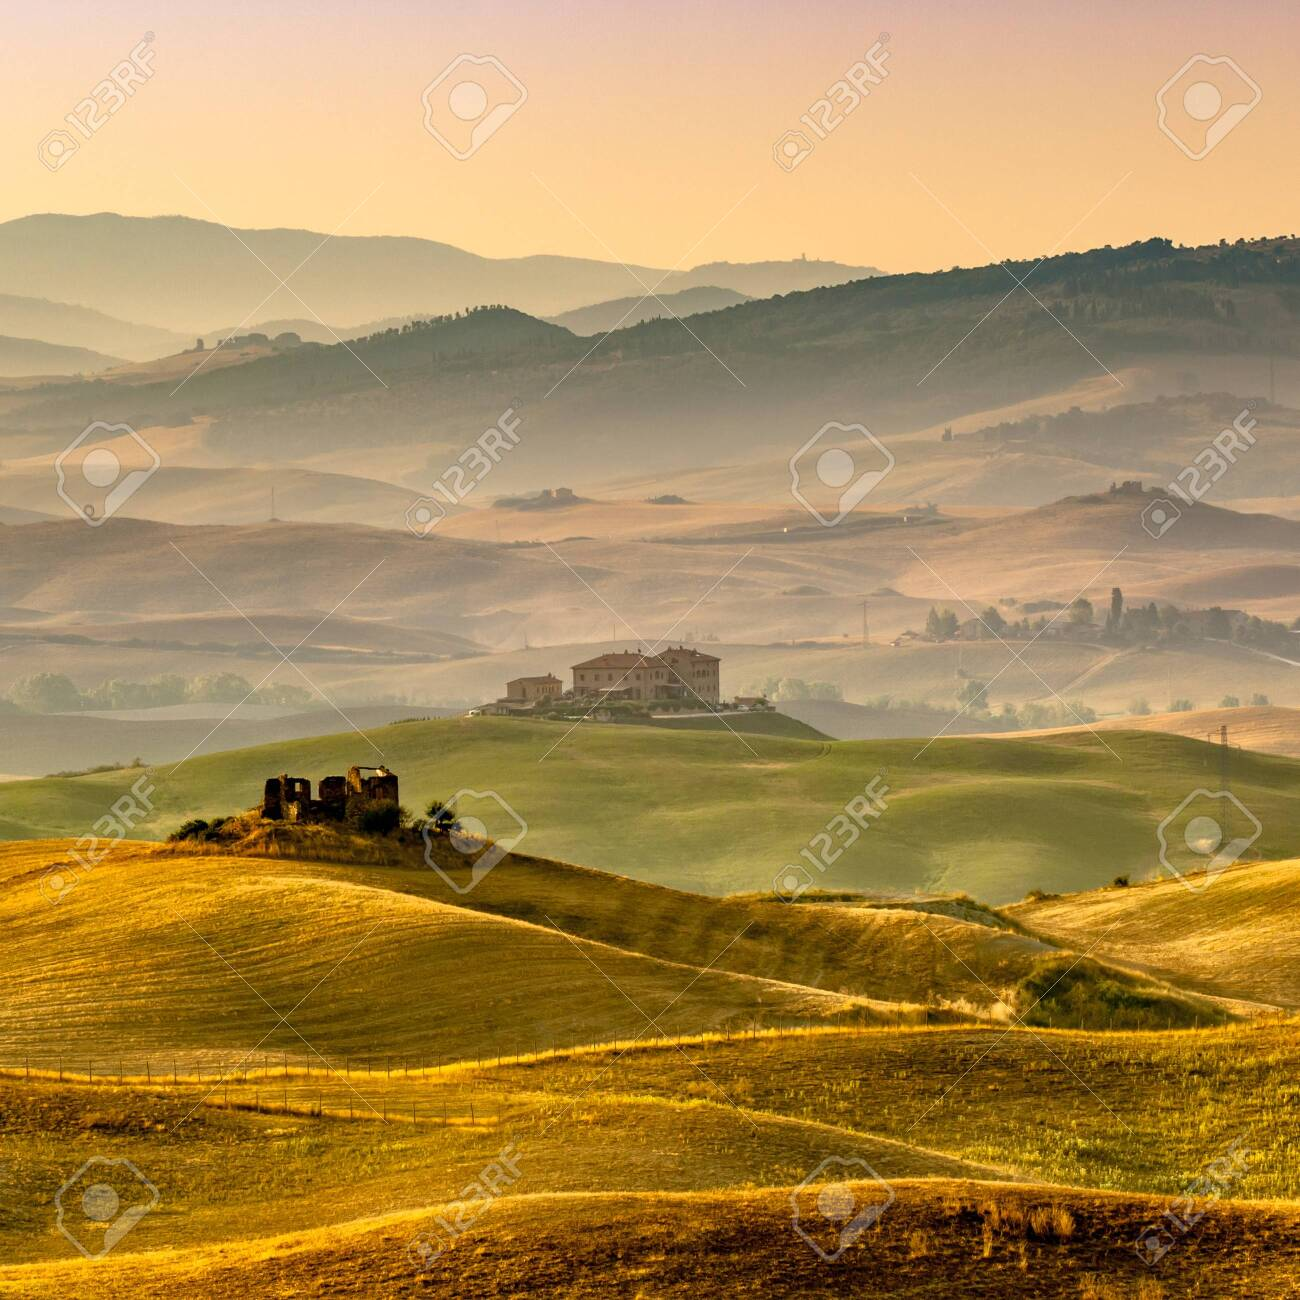 Sunrise over Farms in Hilly Countryside in Tuscany, Italy